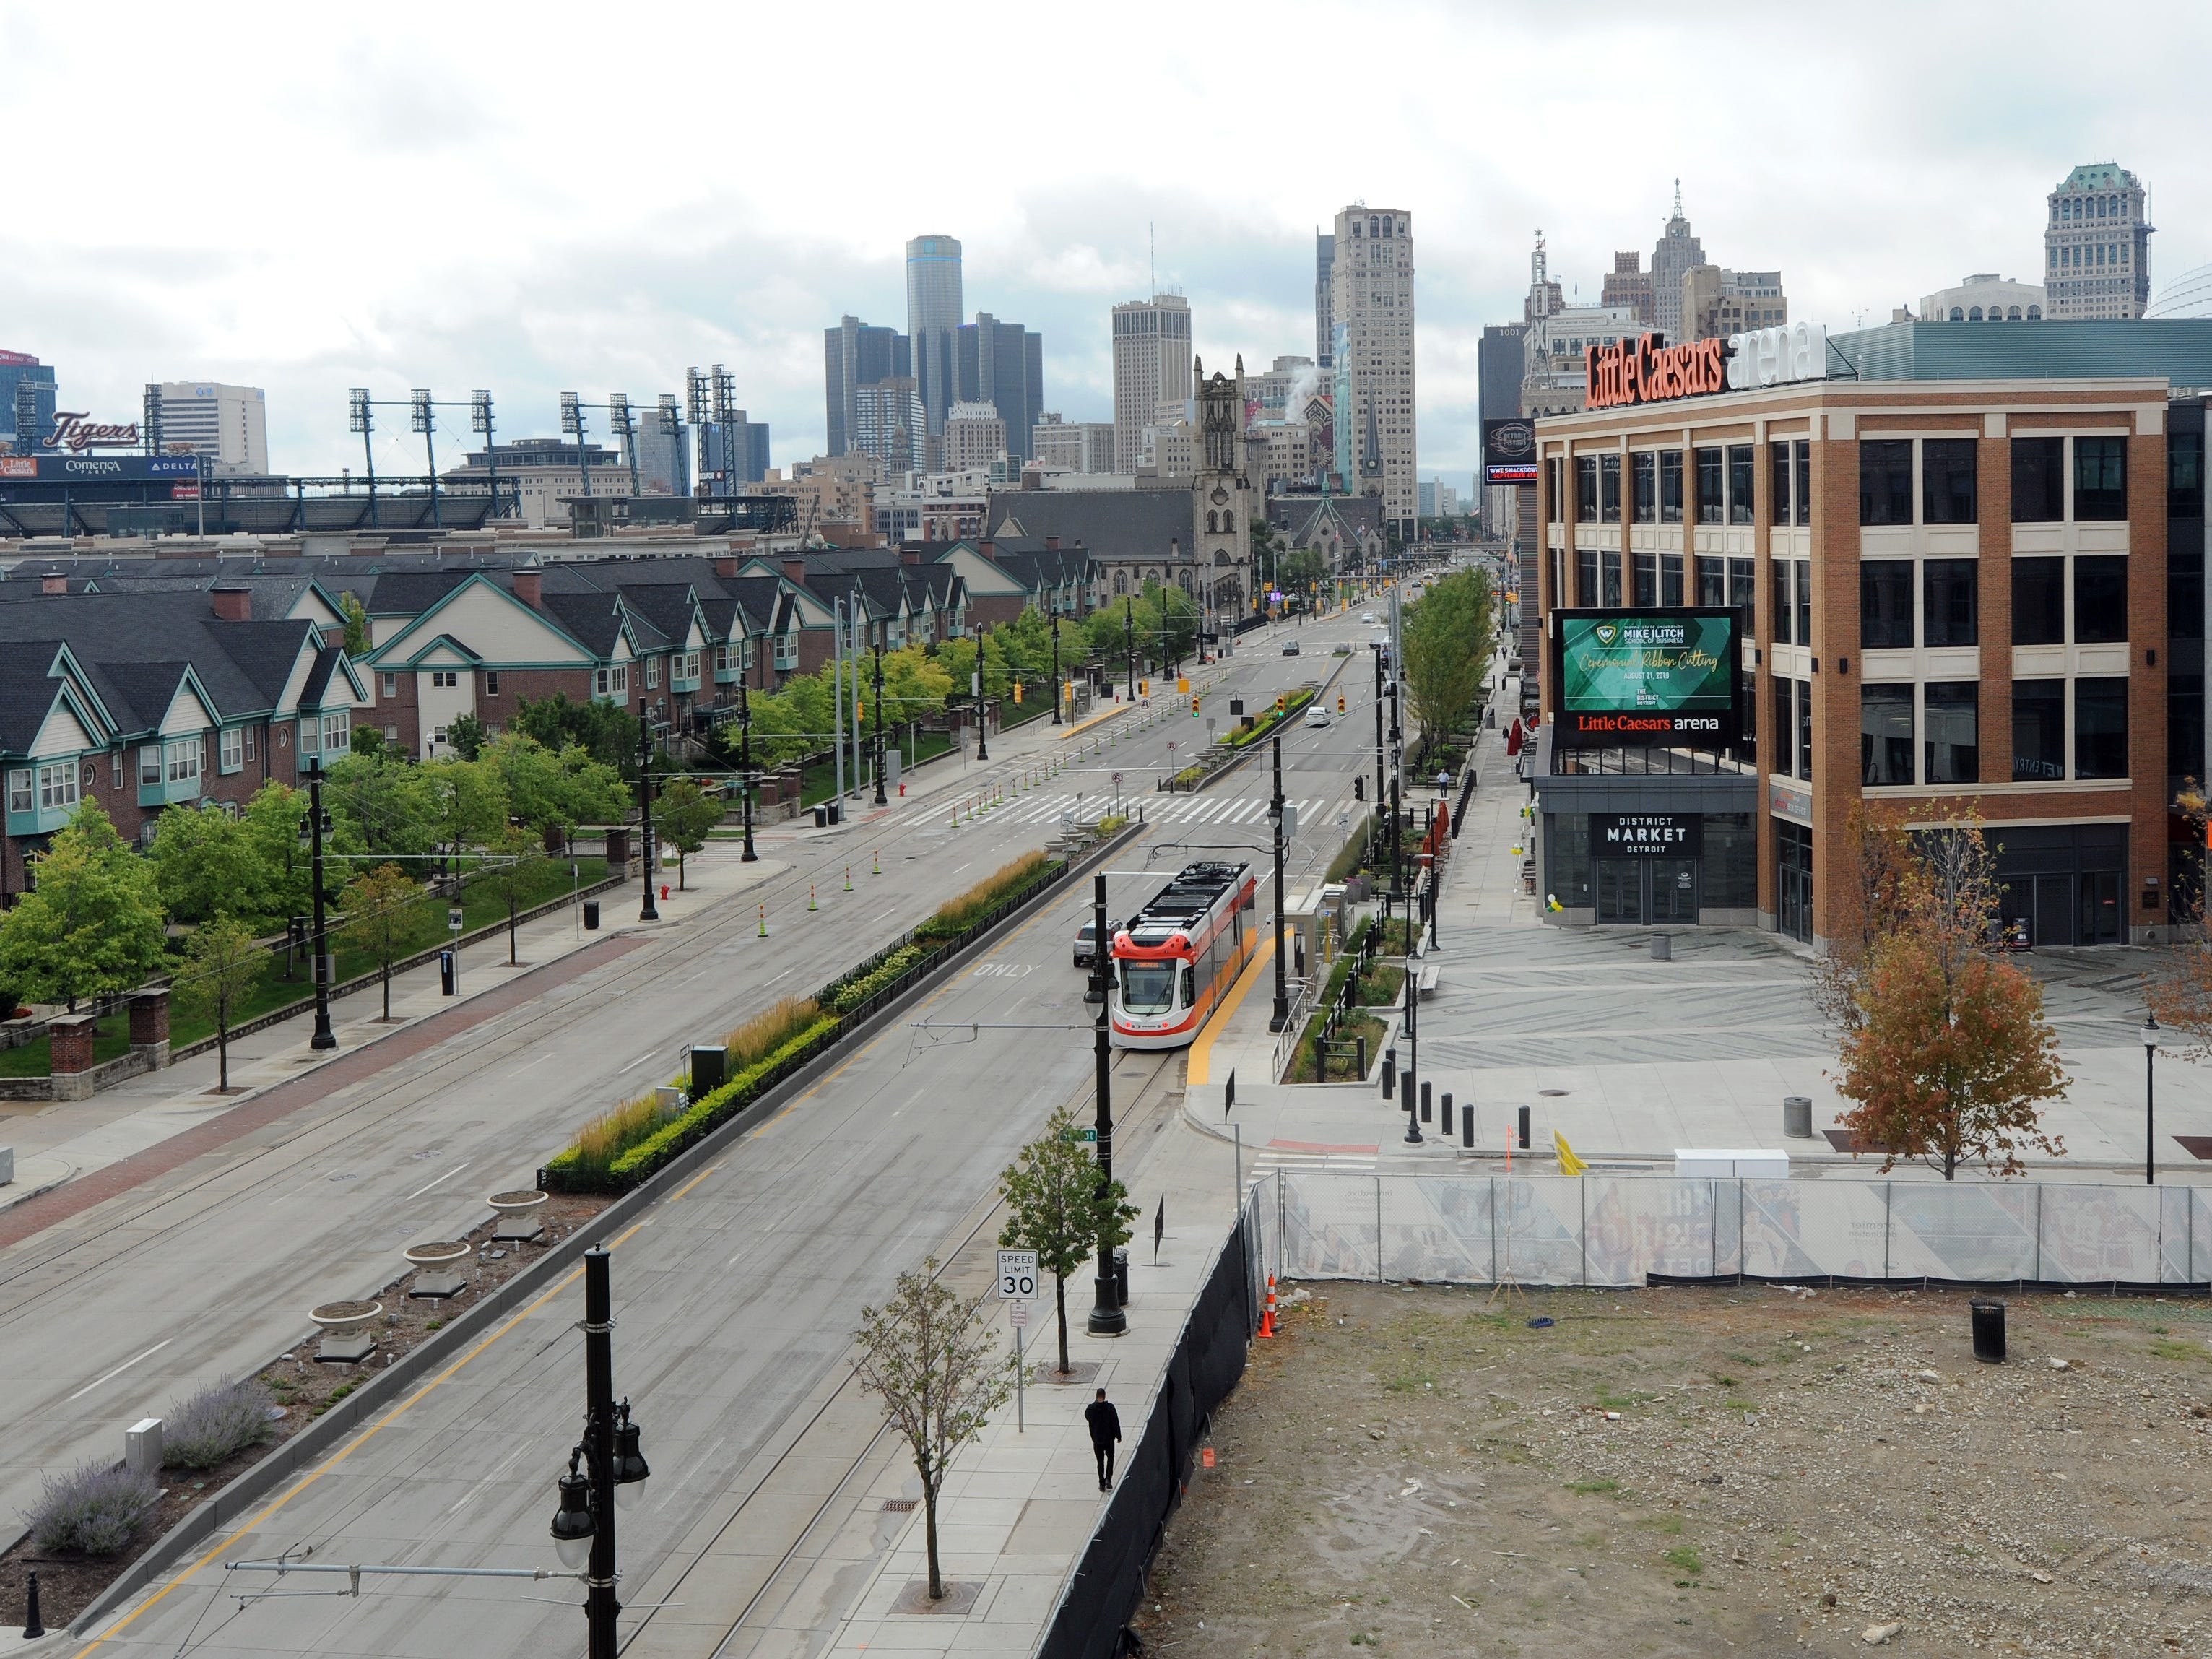 The view of downtown Detroit as seen from the terrace of the Mike Ilitch School of Business at Wayne State University.